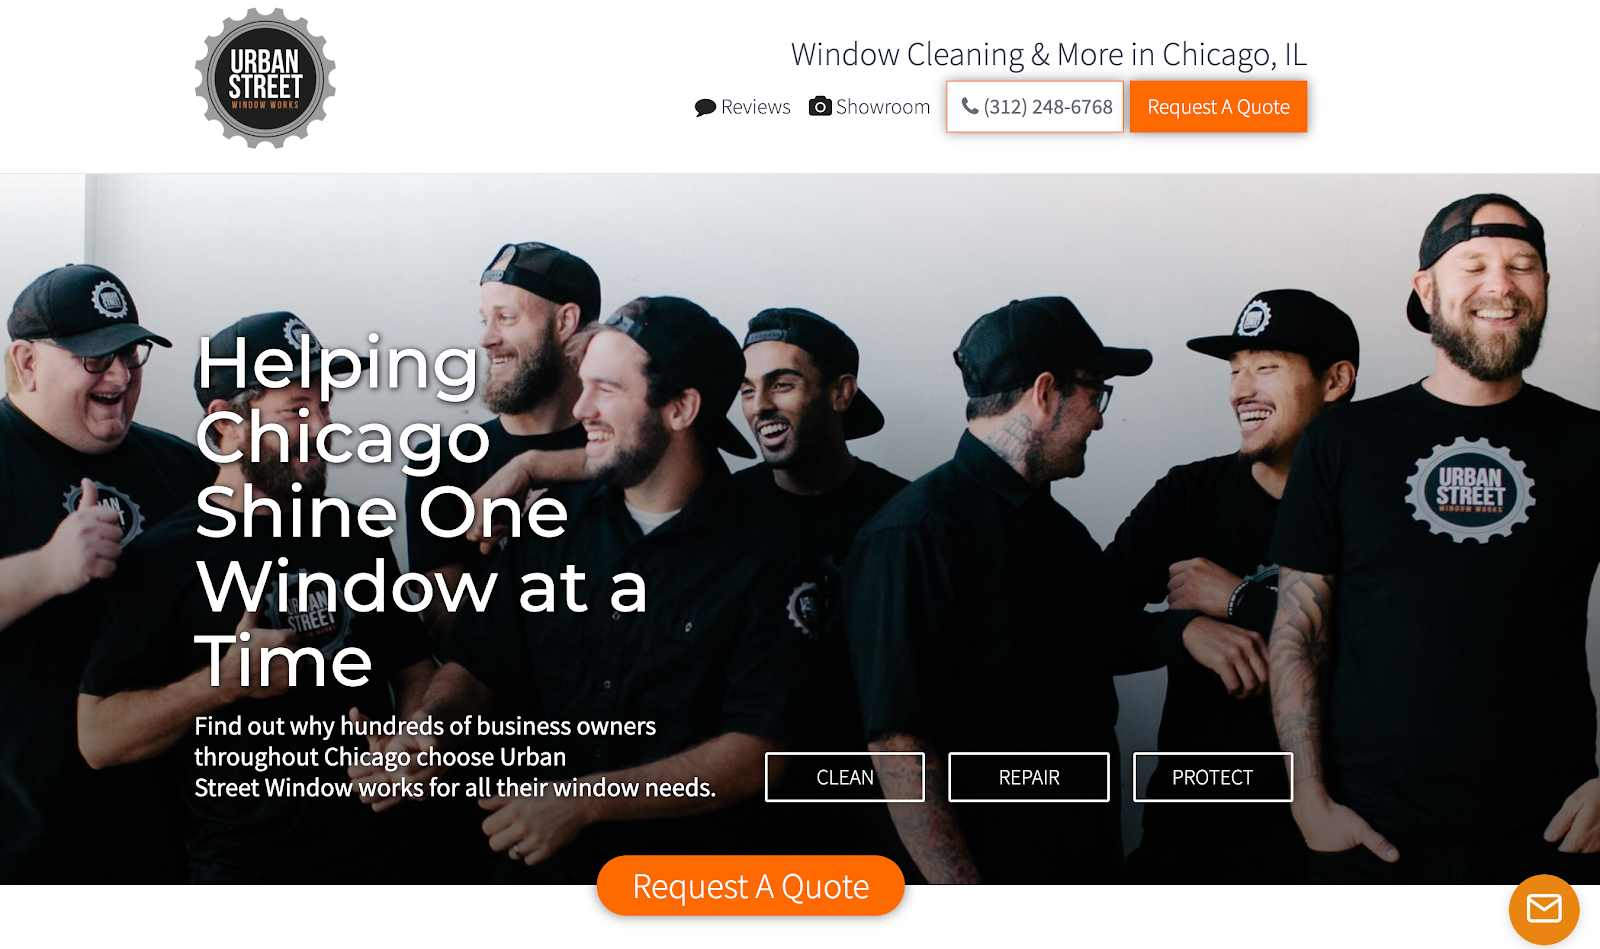 Screenshot of Urban Street Window Works using a professional team photo on their website for their cleaning company.